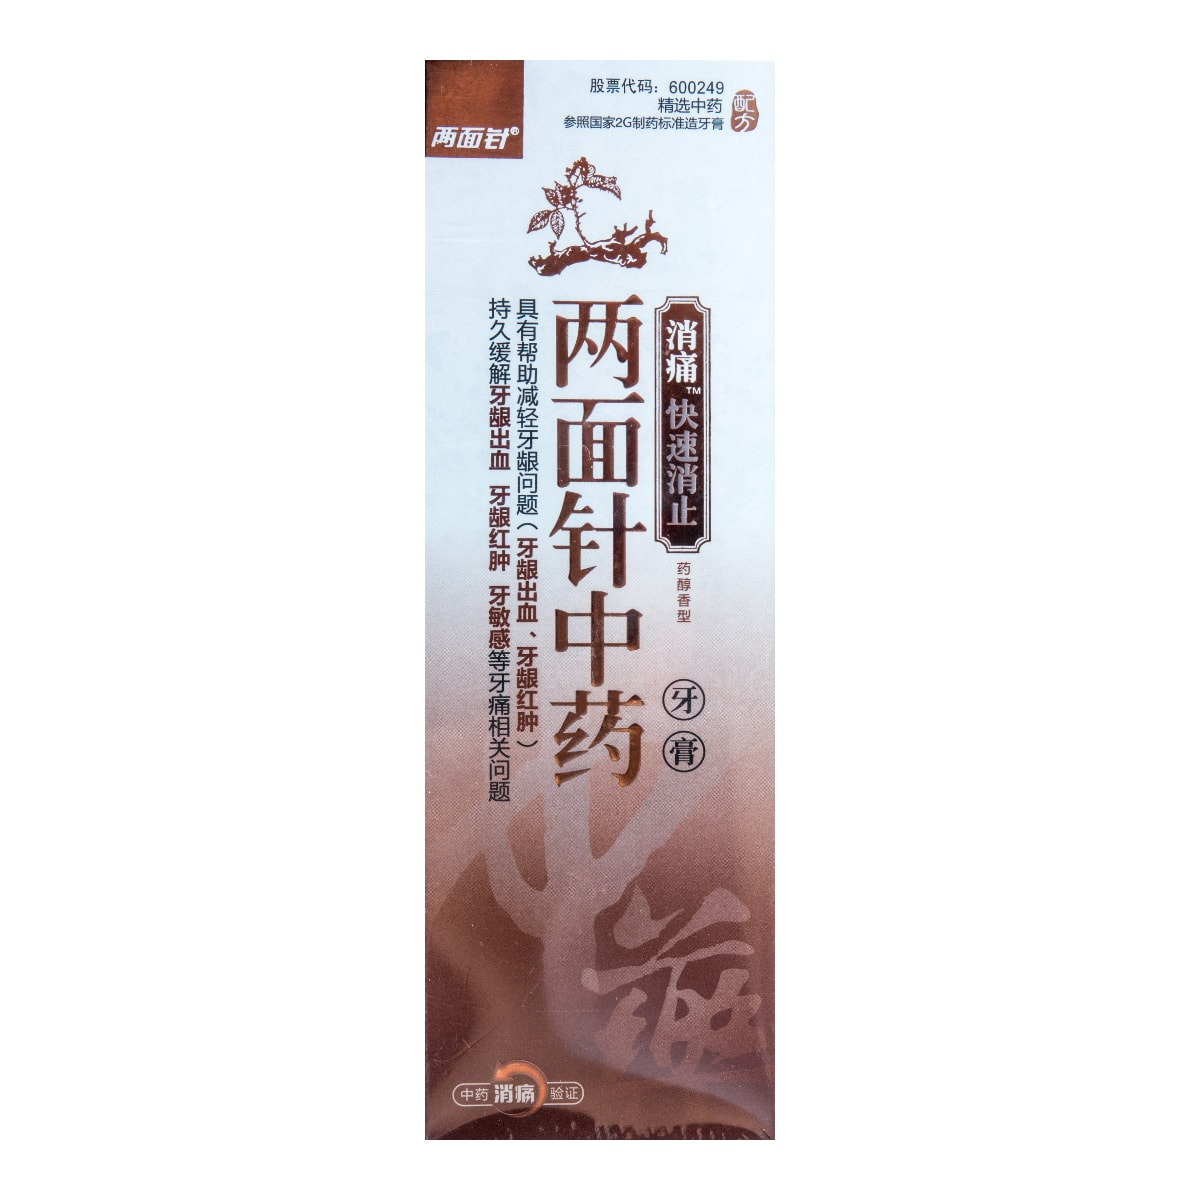 Yamibuy.com:Customer reviews:LIANG MIAN ZHEN Maximum Gum Relief for Toothache & Gum Swelling Toothpaste 110g